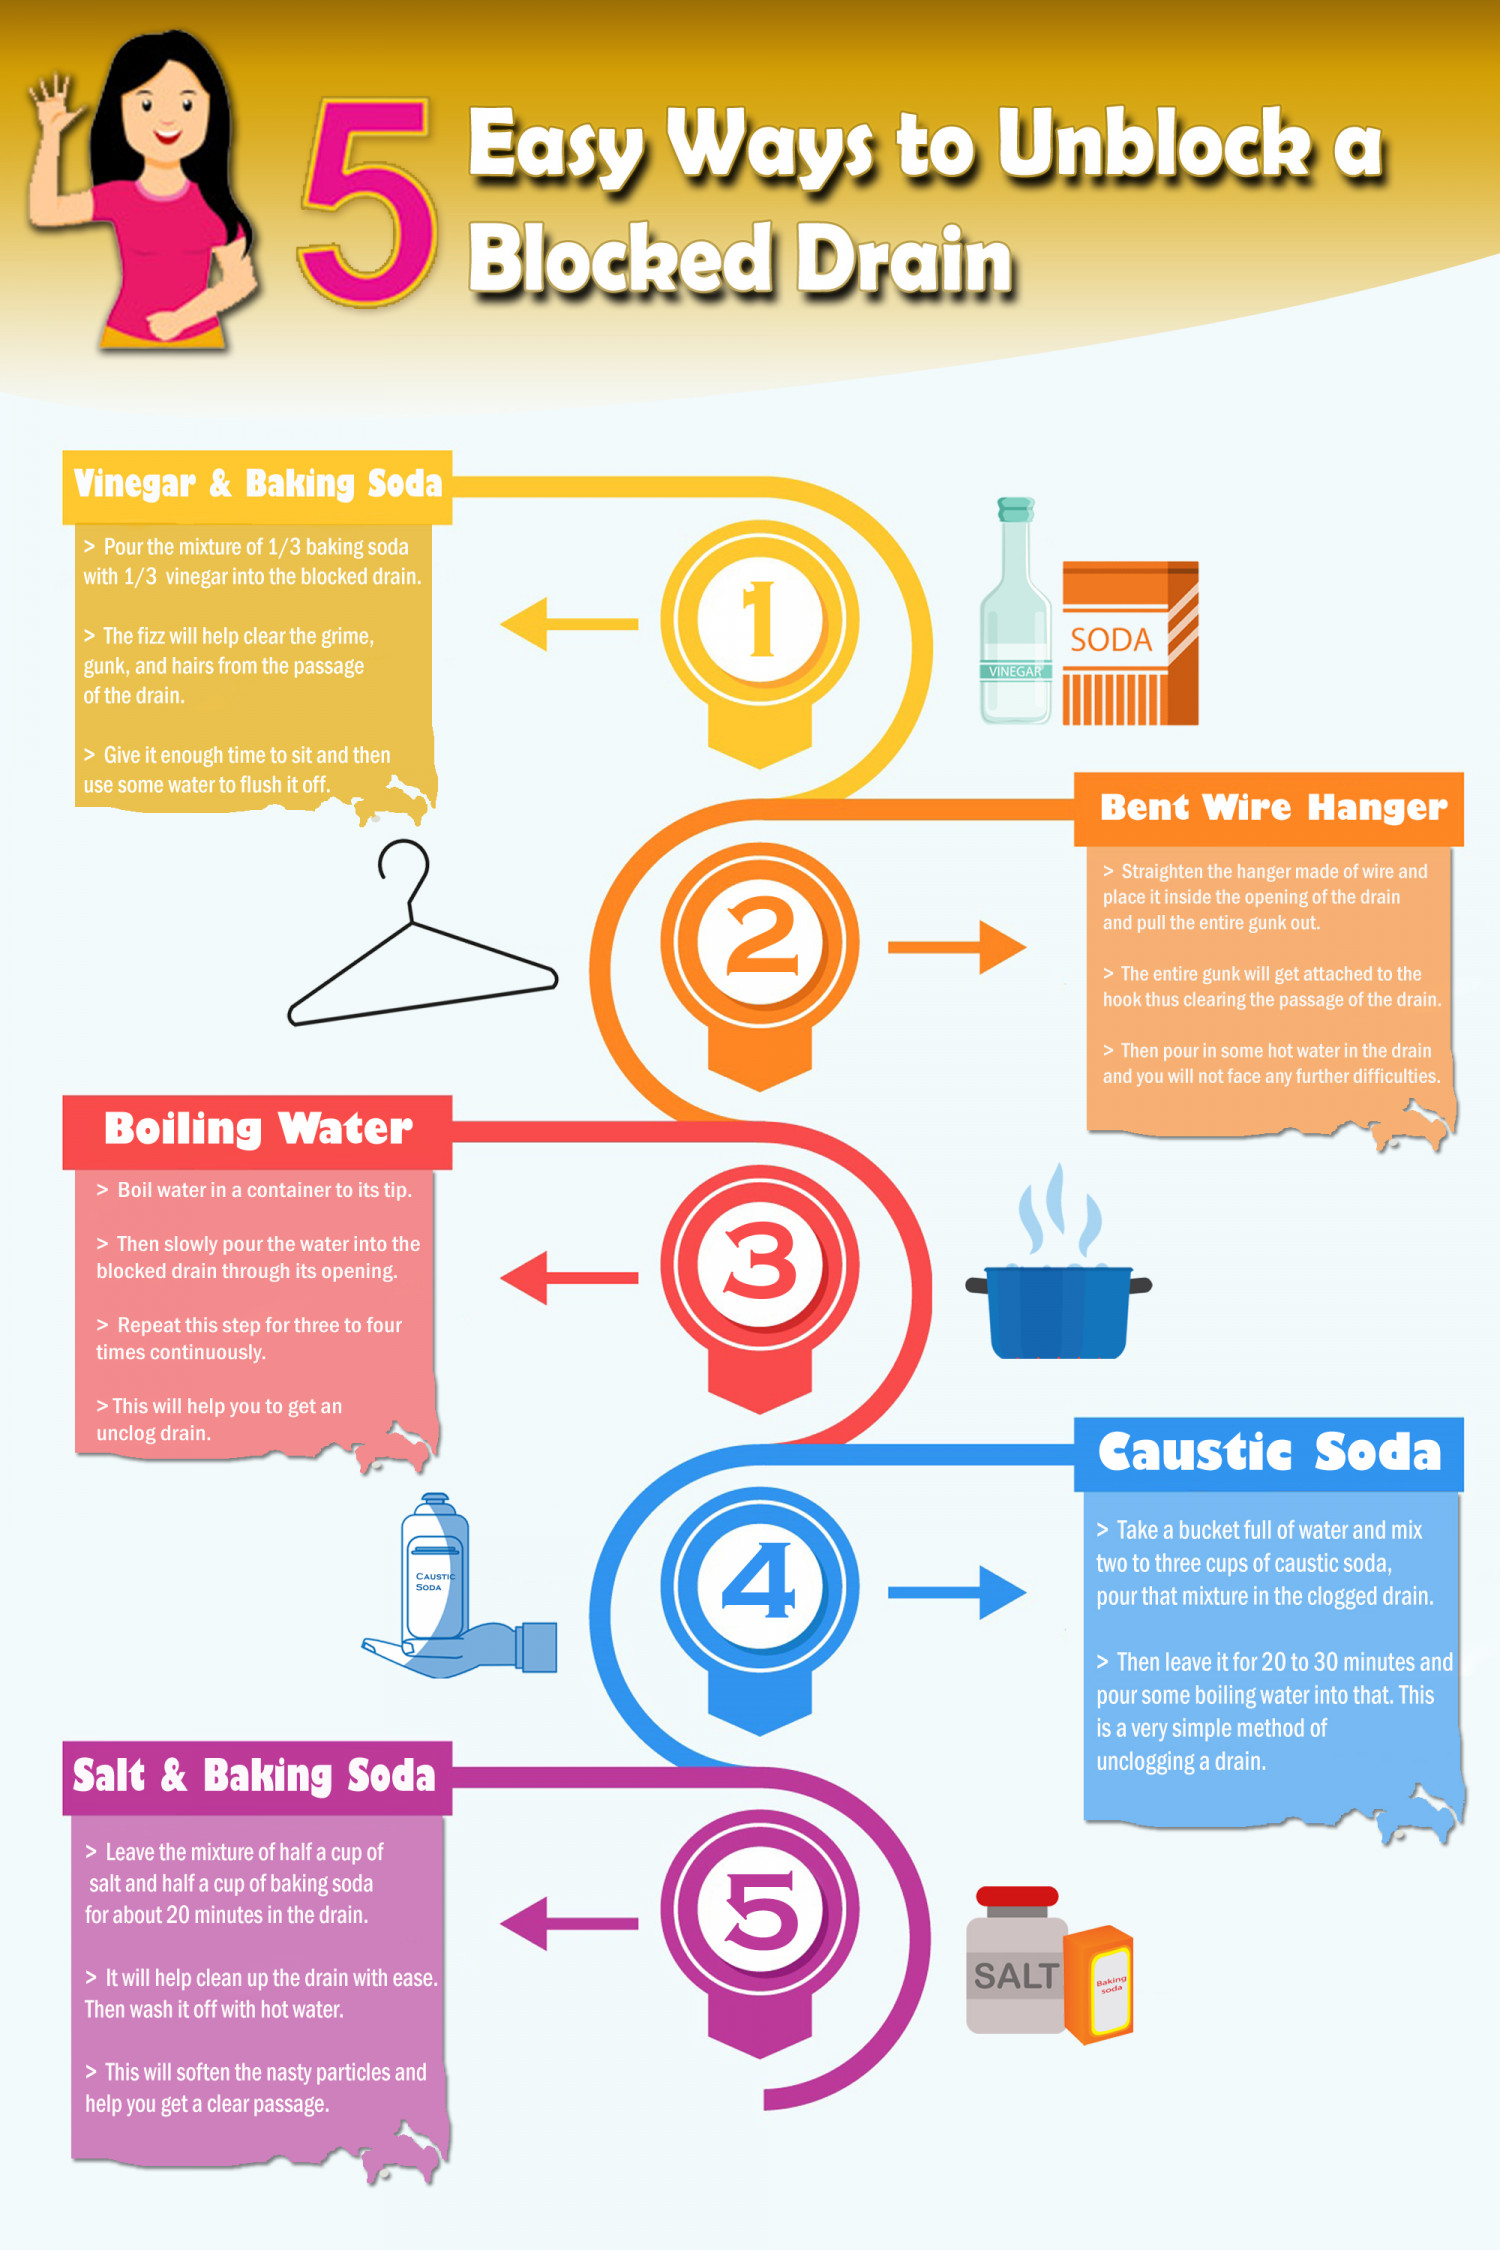 Easy Ways to Unblock a Blocked Drain Infographic